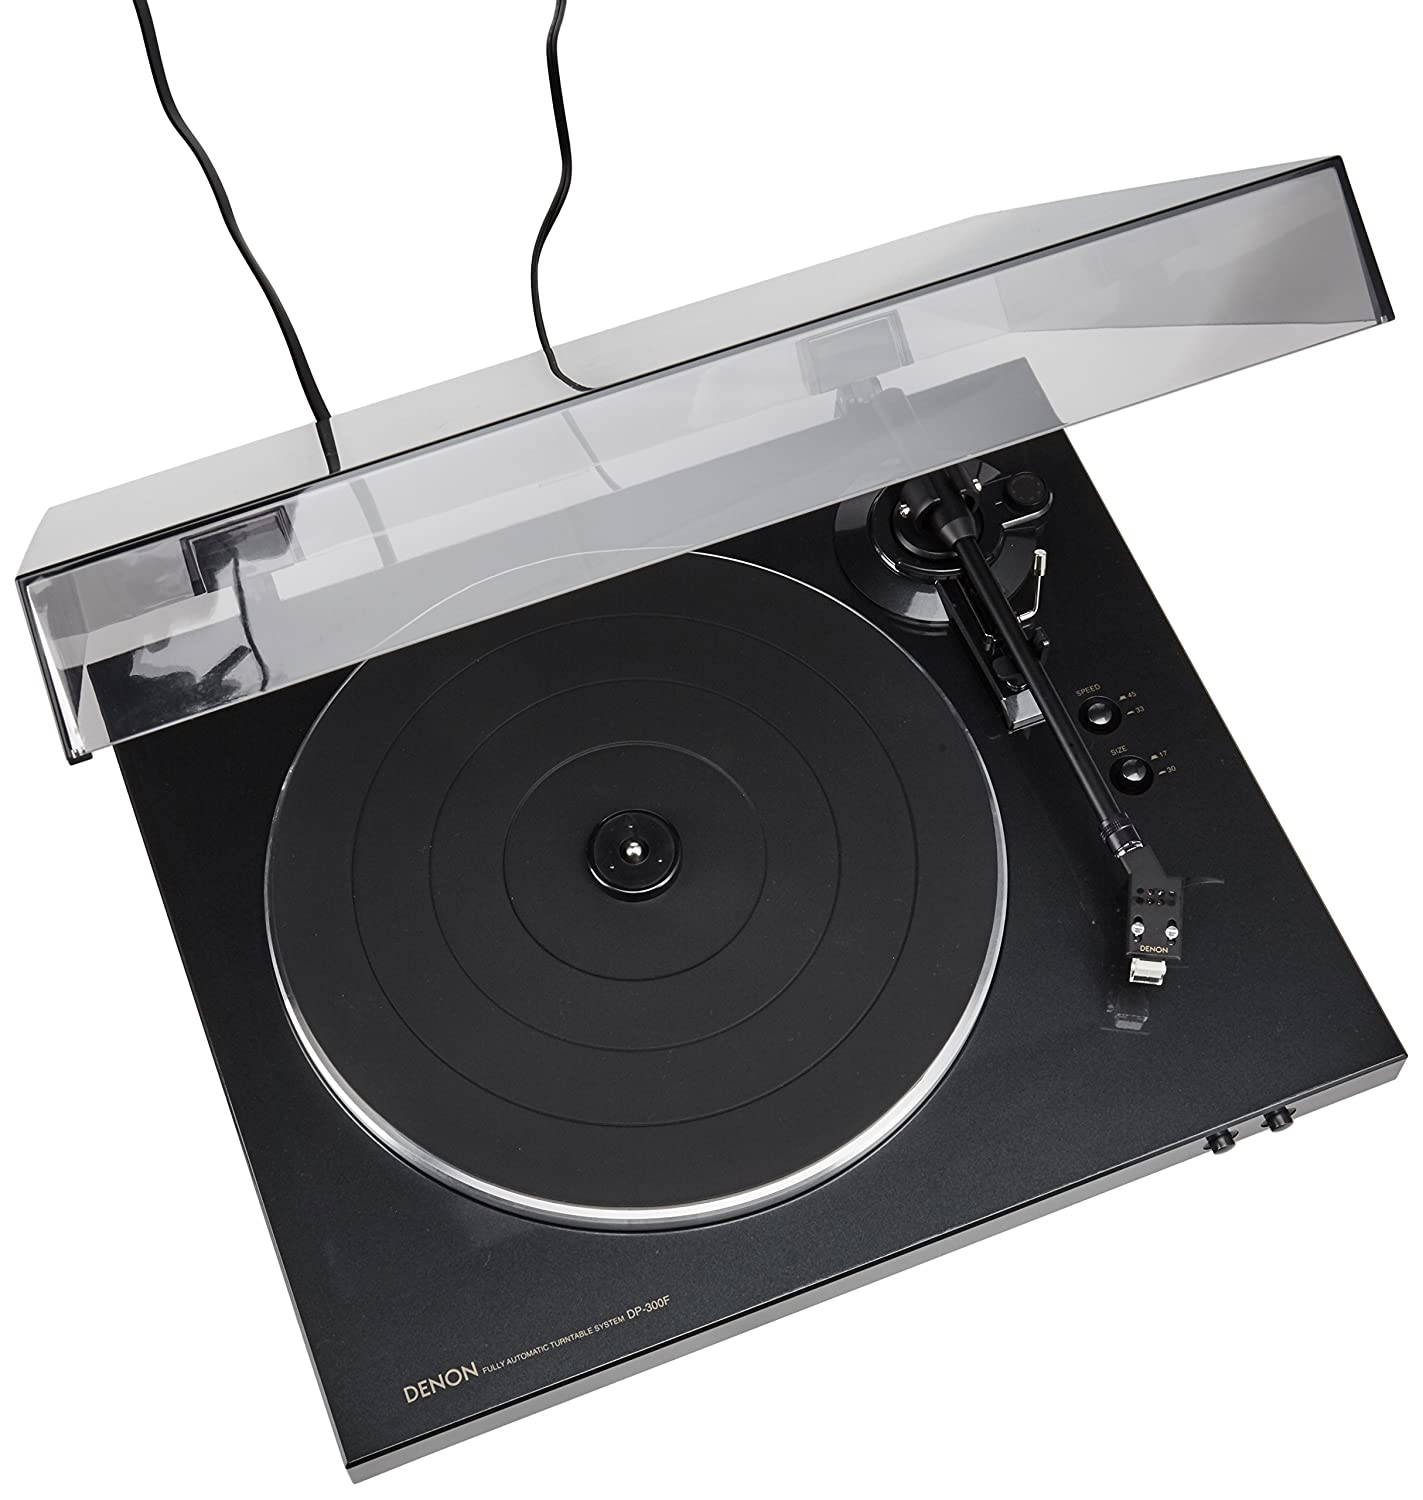 Denon Fully Automatic Turntable Black Friday deal 2020